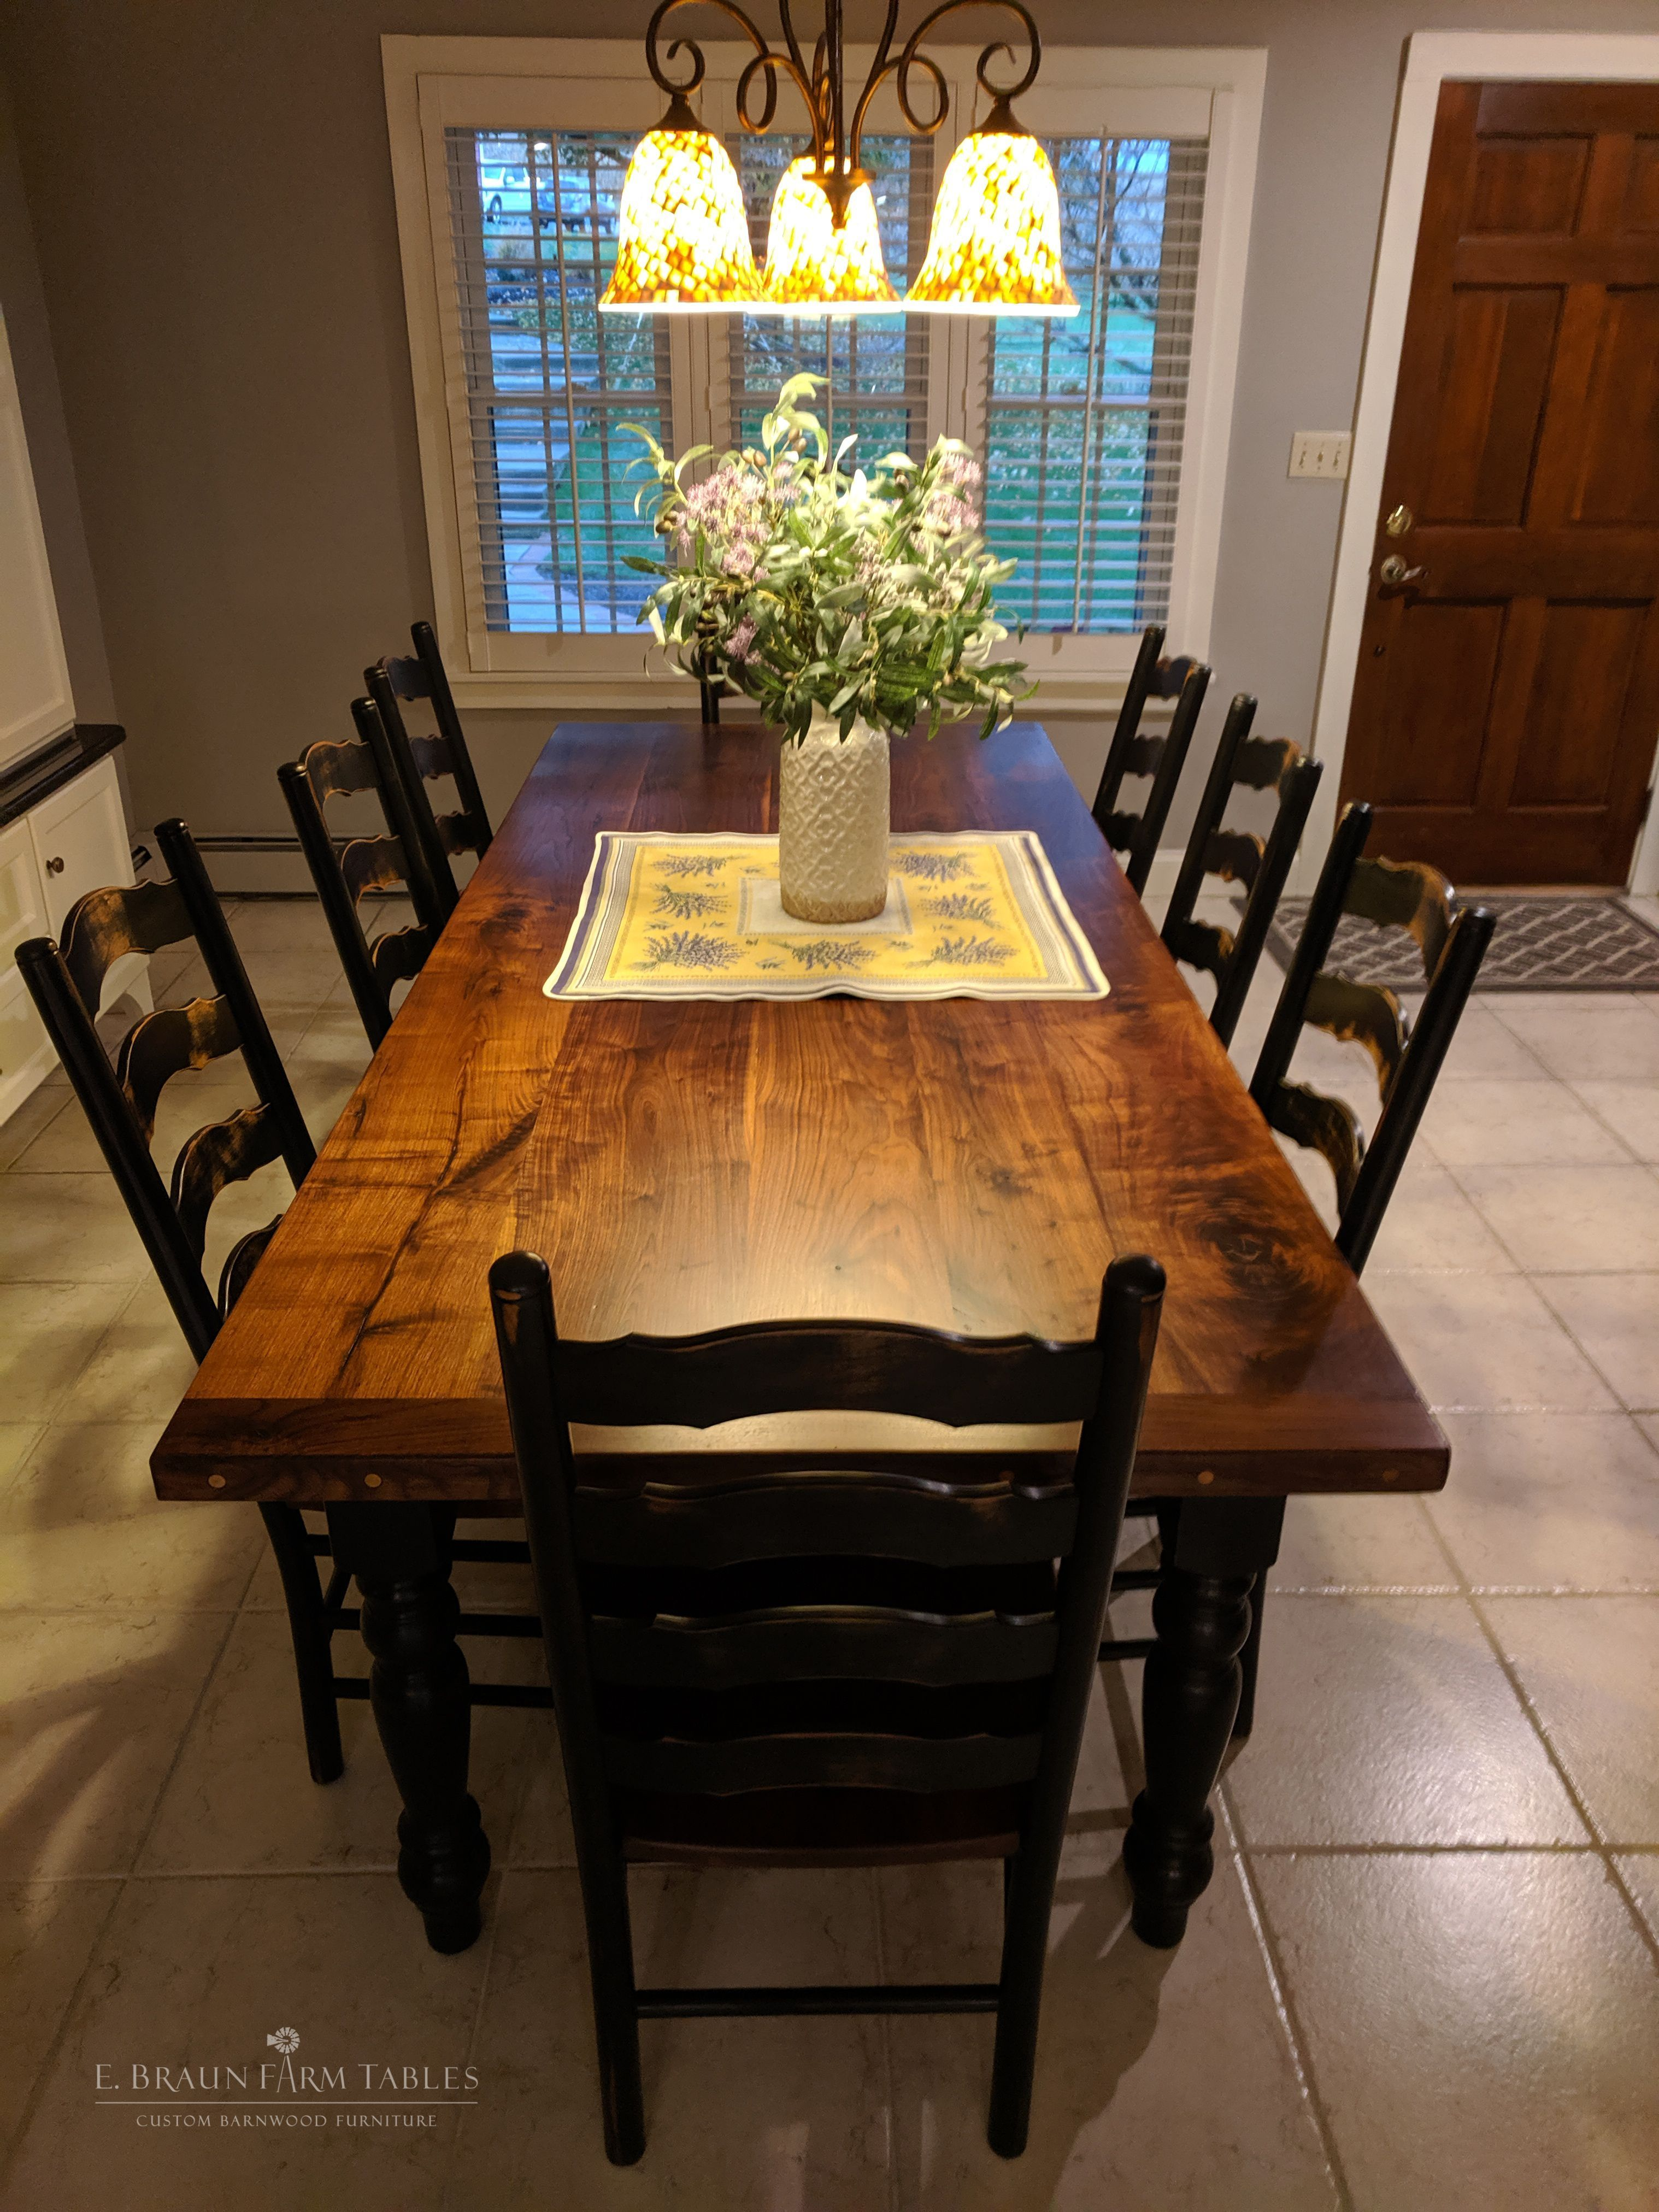 Amazing Black Farmhouse Table Home Decor And Garden Ideas In 2021 Kitchen Table Wood Wood Dining Room Barnwood Dining Table